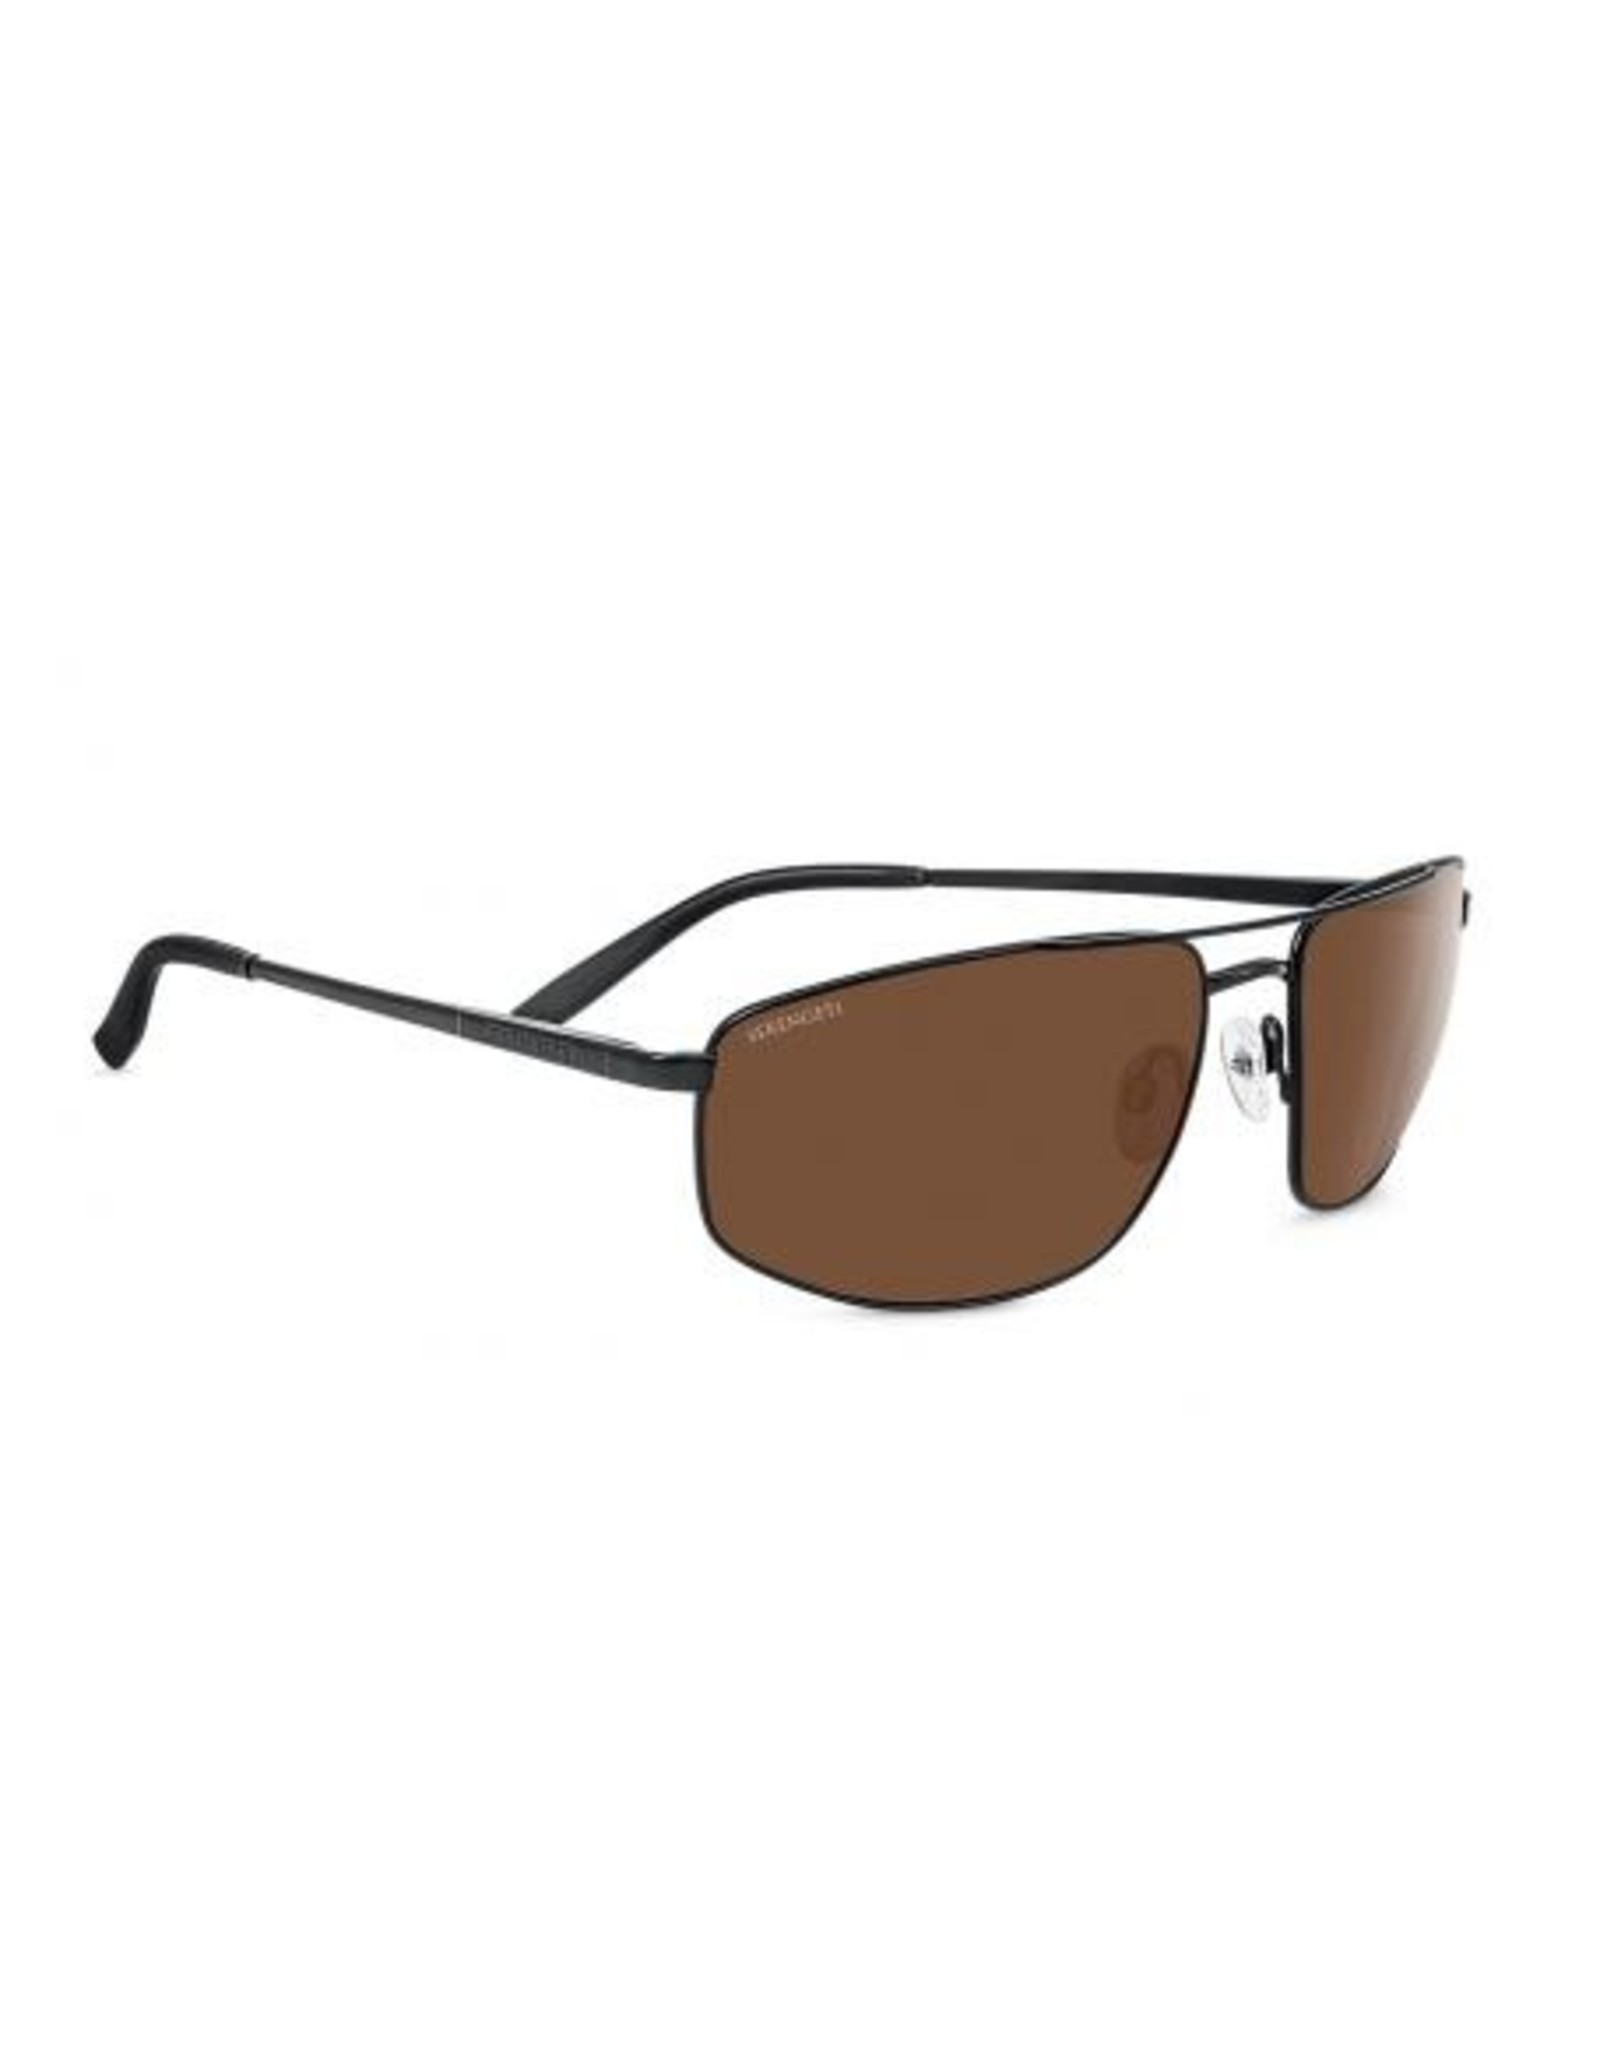 Serengeti Modugno 8407 green polarized